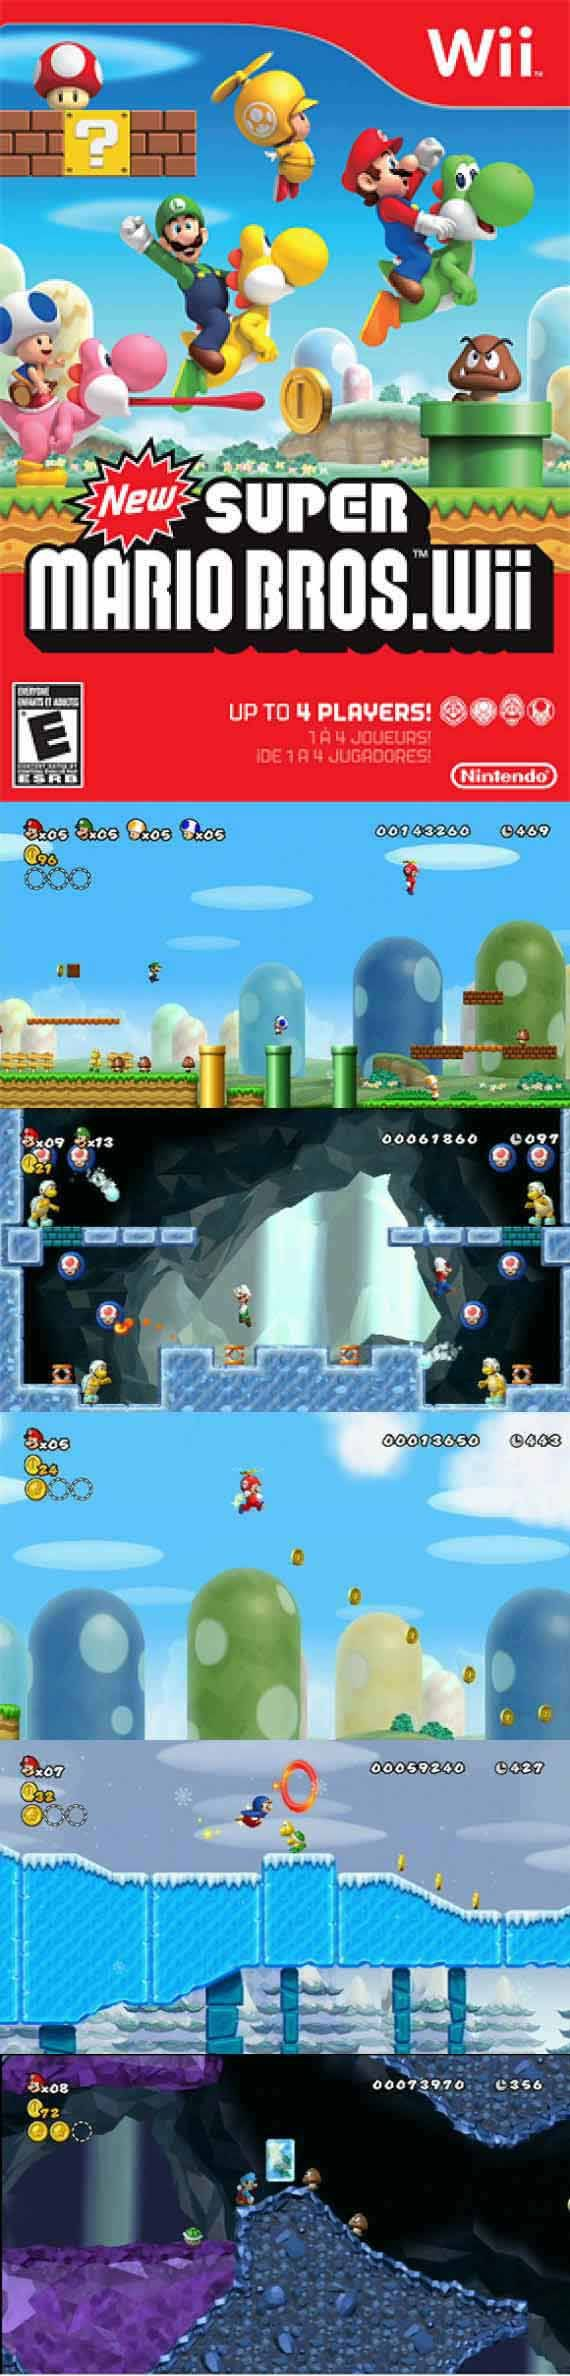 Celebrate #MAR10Day with Super #MarioBros Wii http://www.levelgamingground.com/new-super-mario-bros-wii-review.html